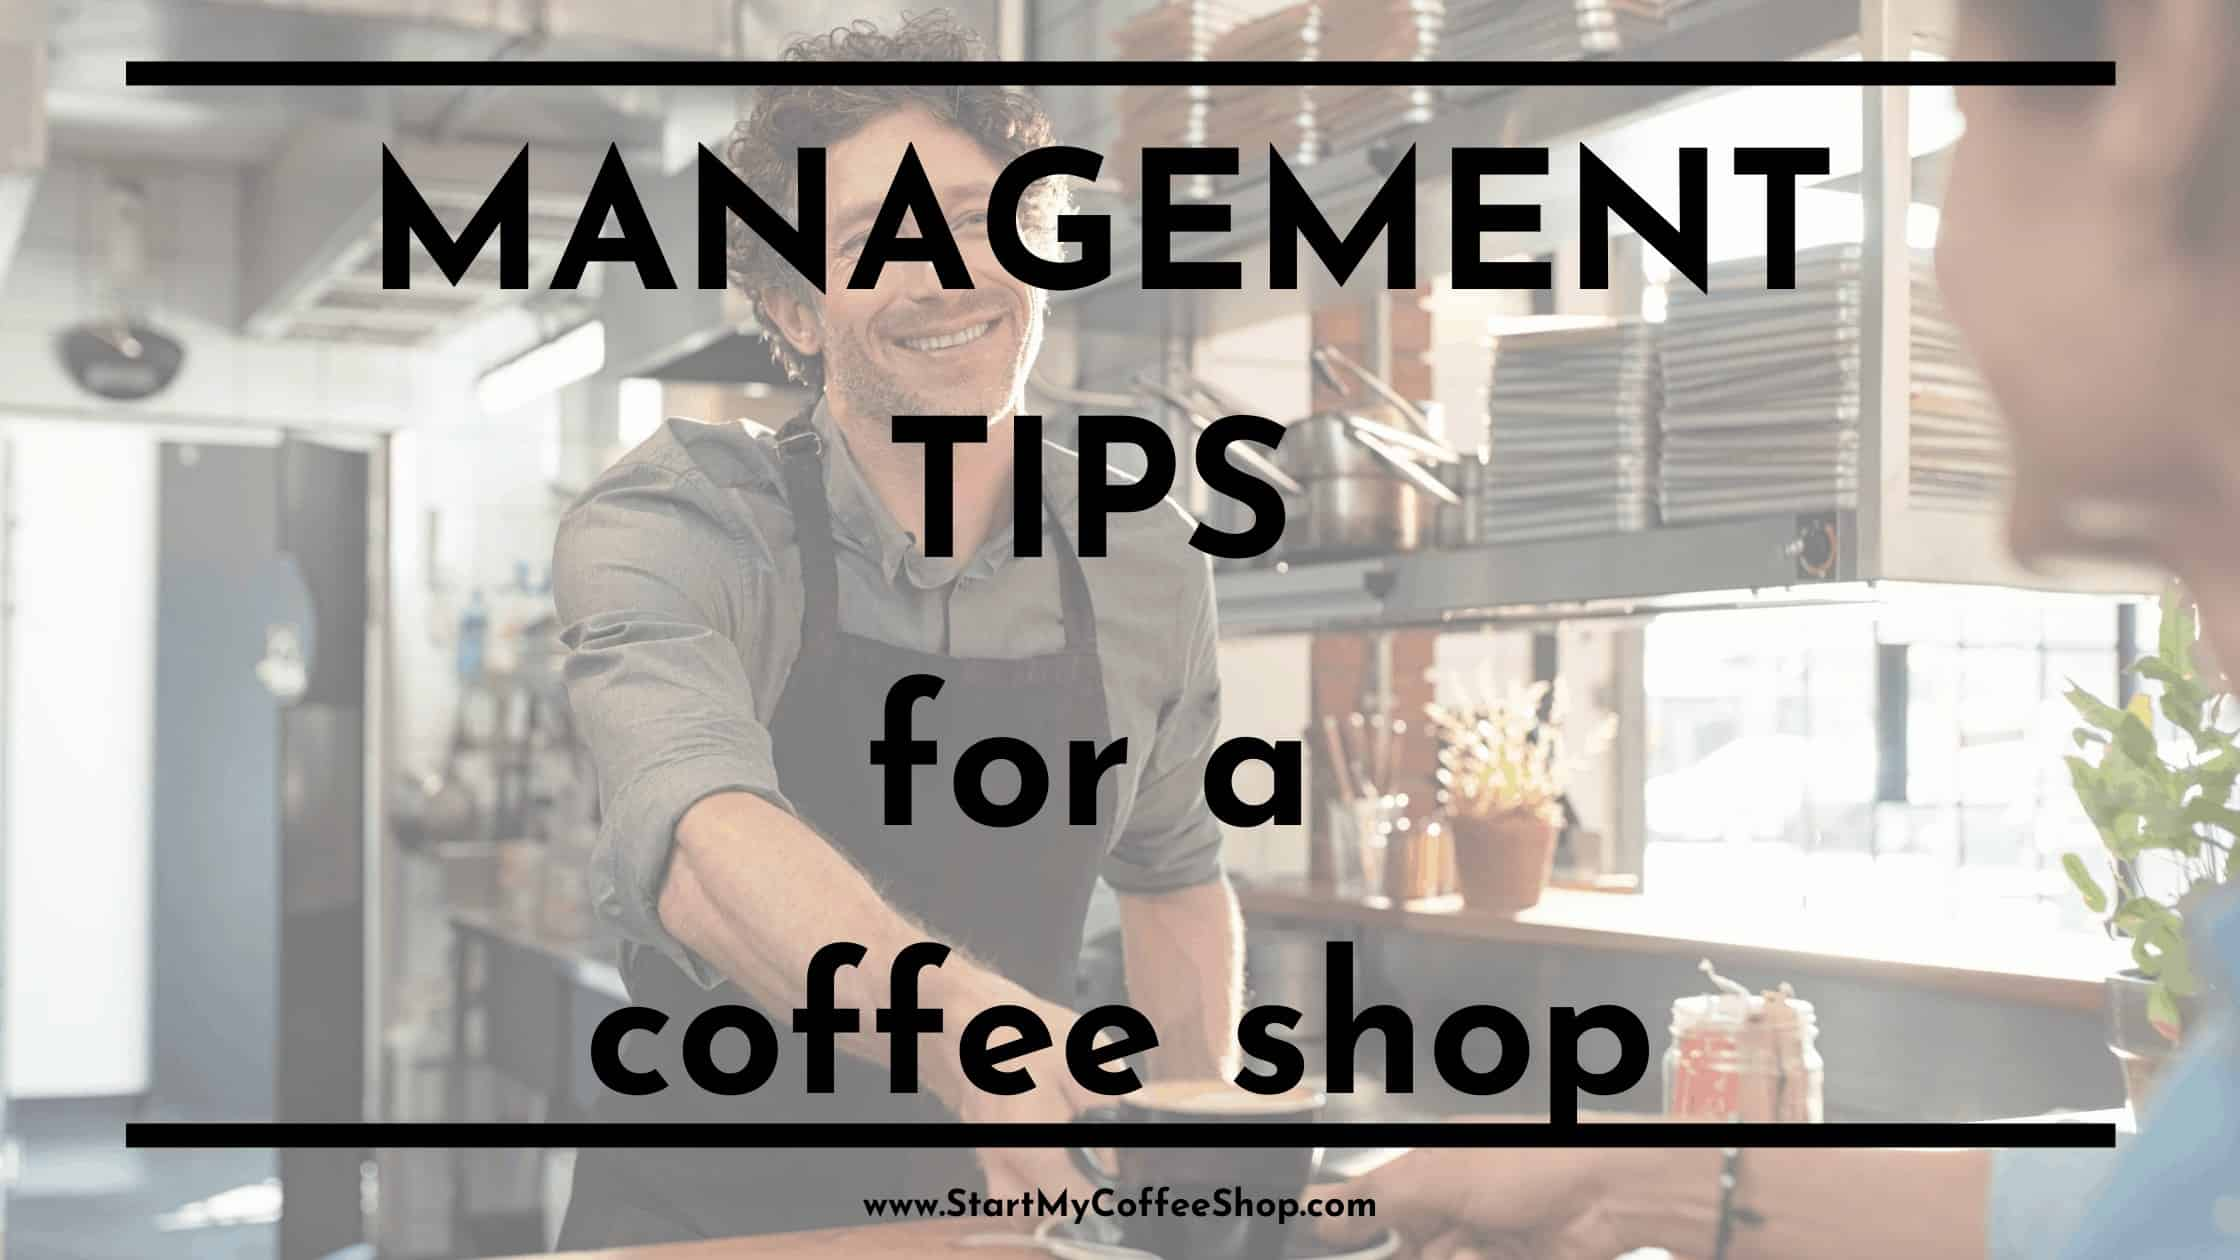 Management tips for a coffee shop